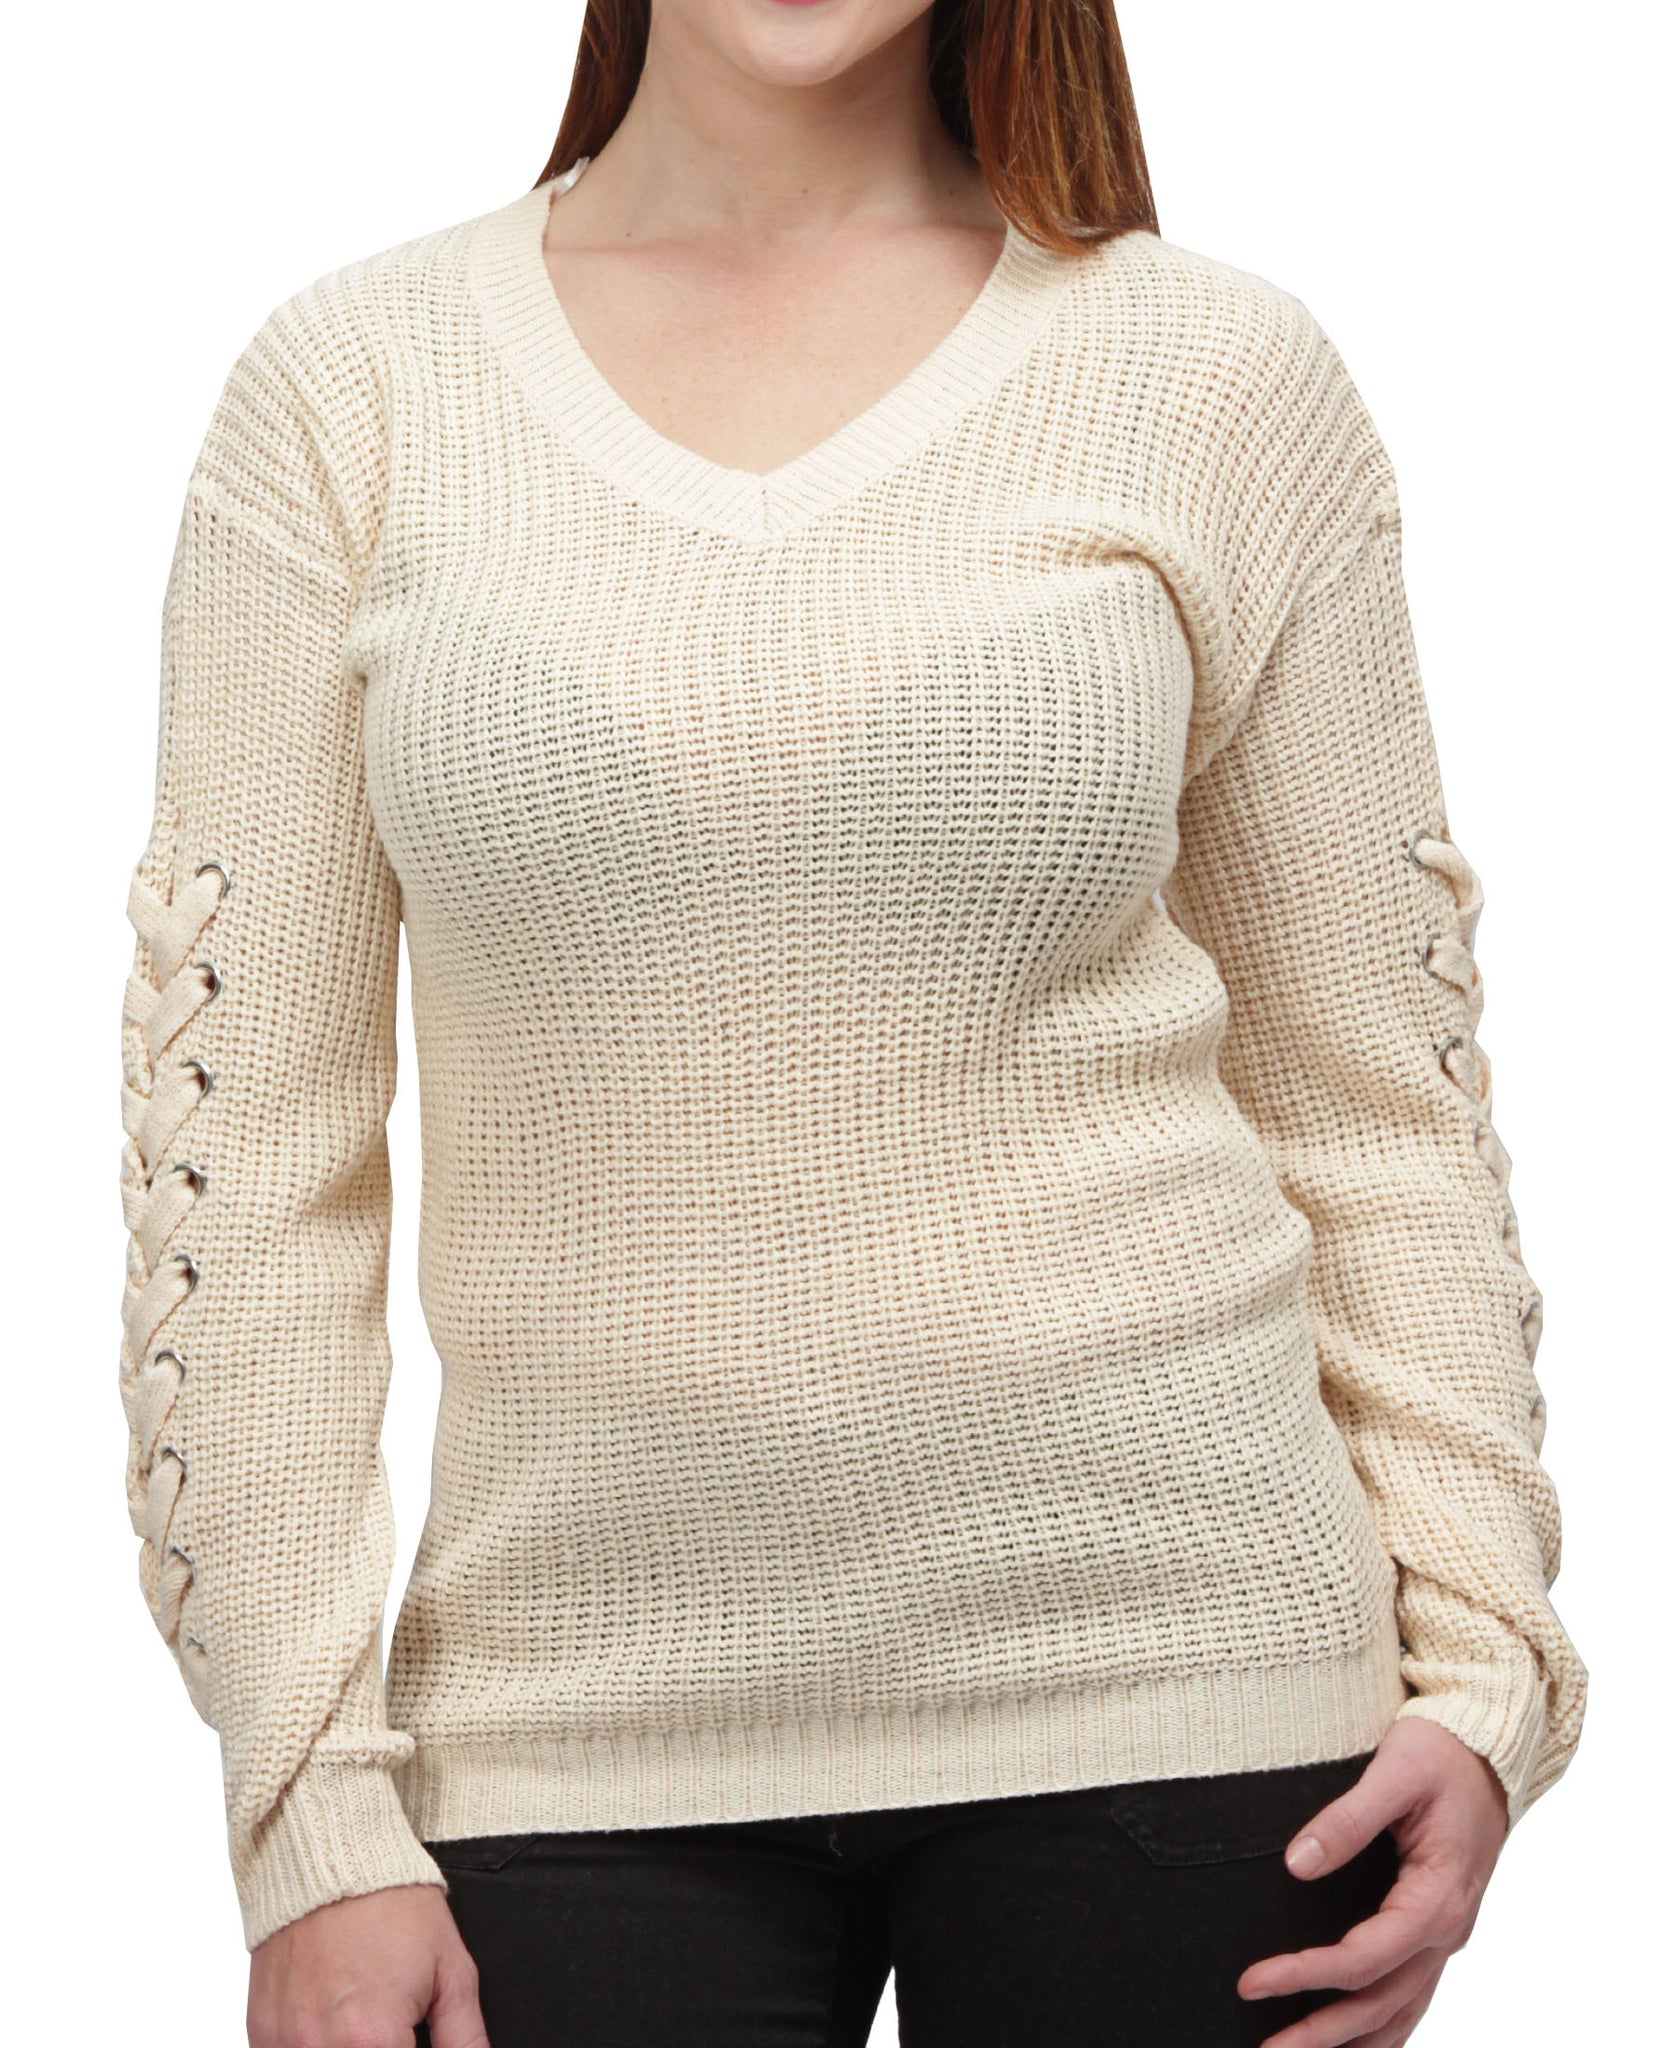 Knitted Jersey - Cream